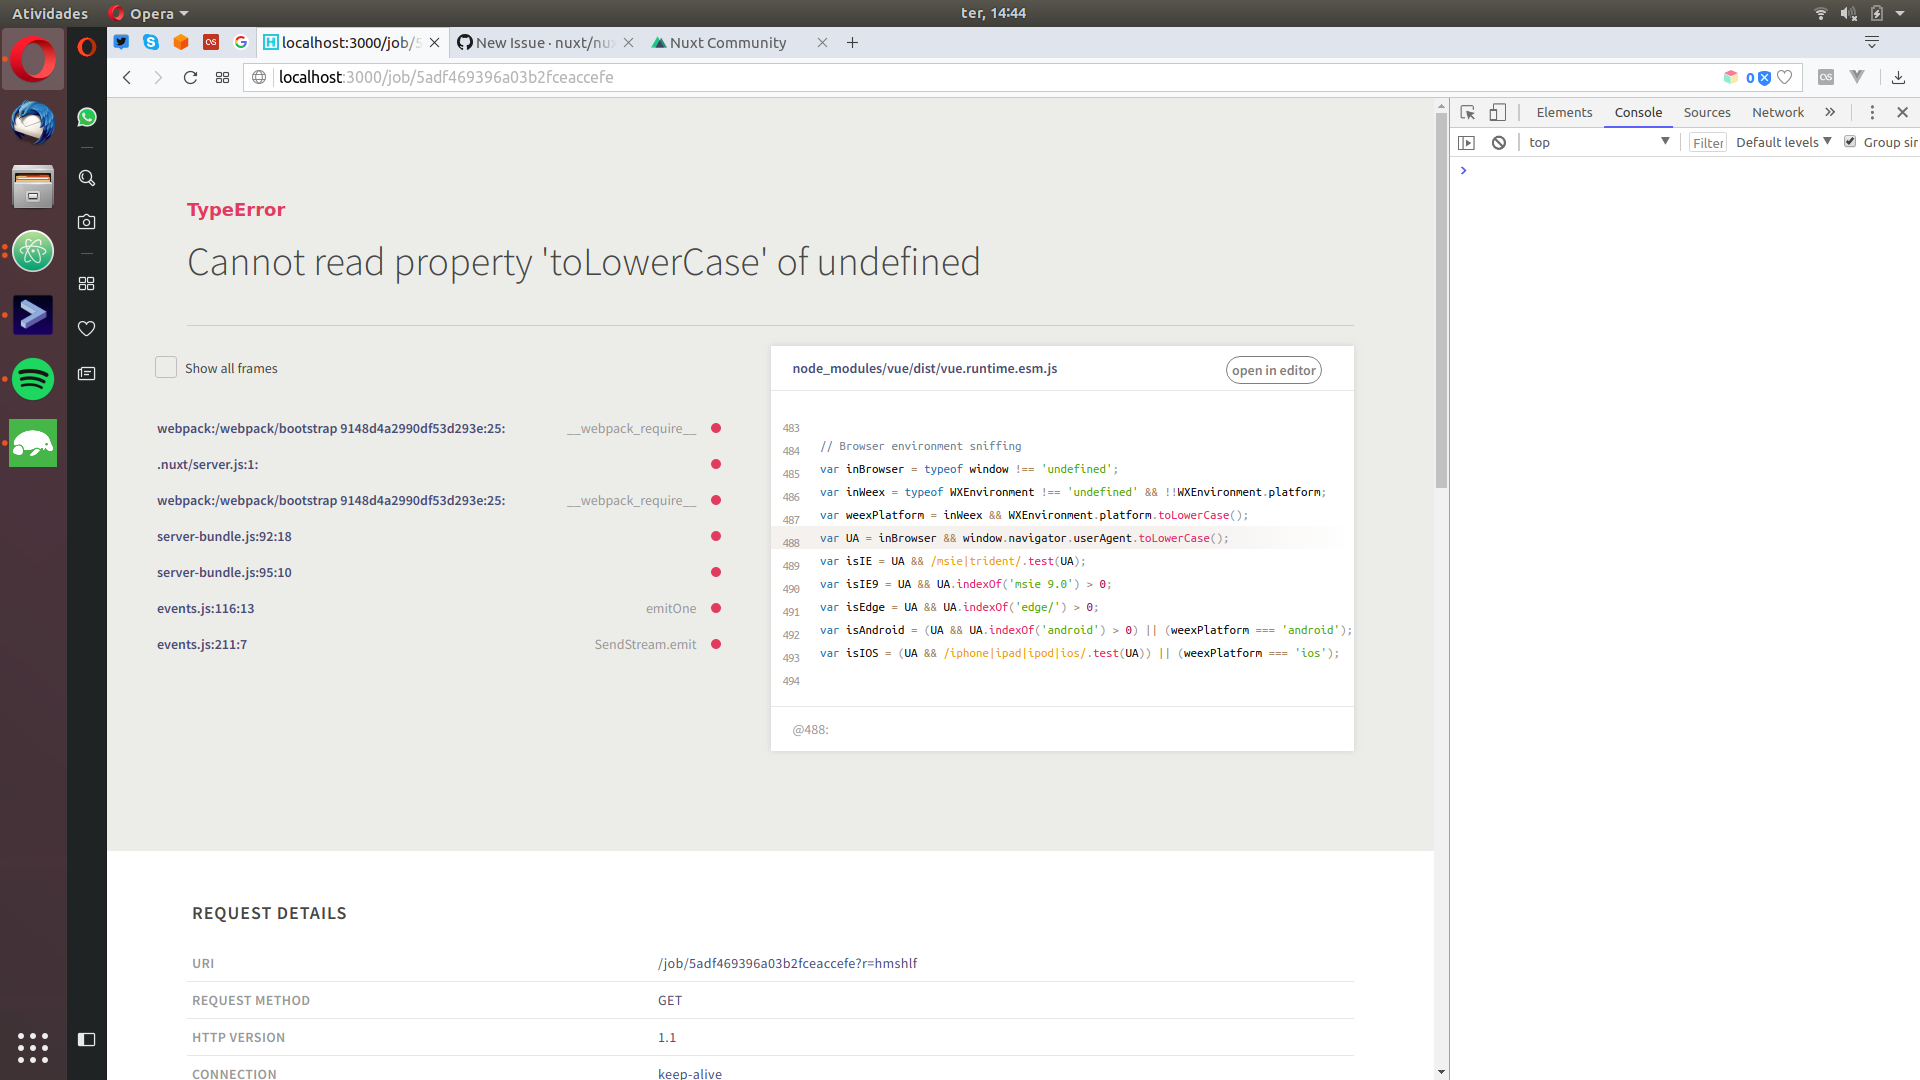 TypeError: Cannot read property 'toLowerCase' of undefined